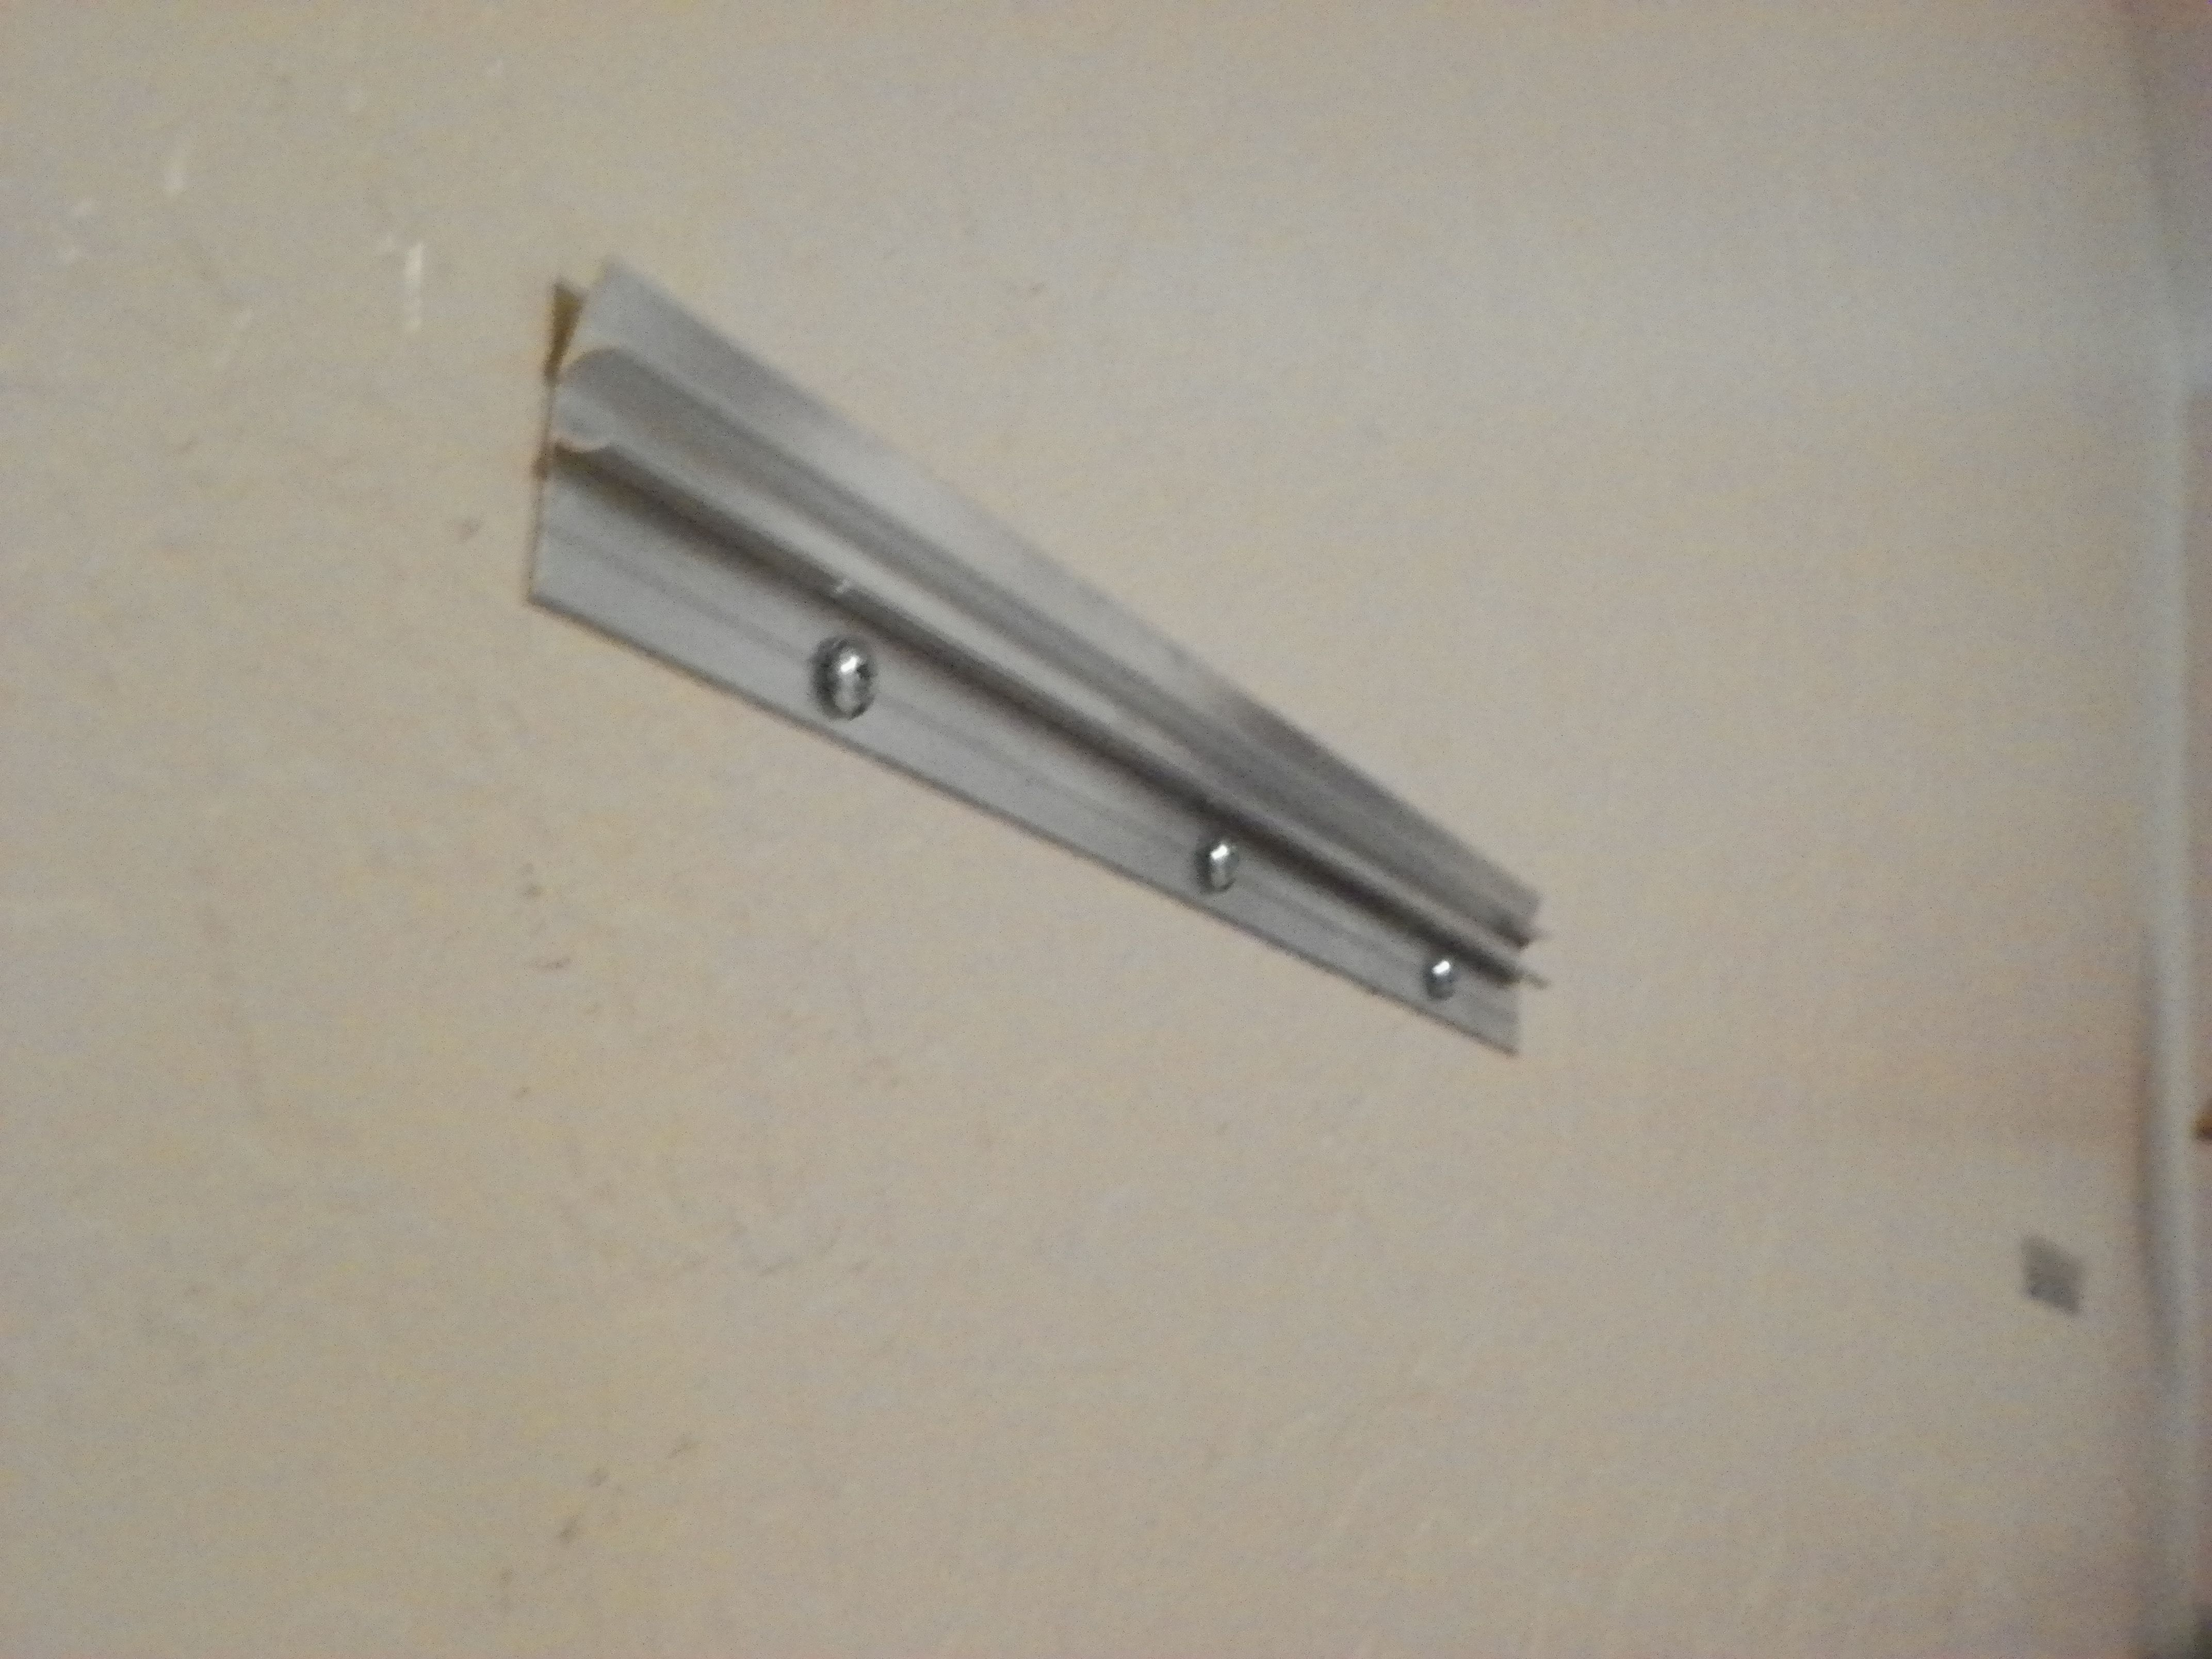 These Flush Mount Brackets Are What You Need To Attach It To The